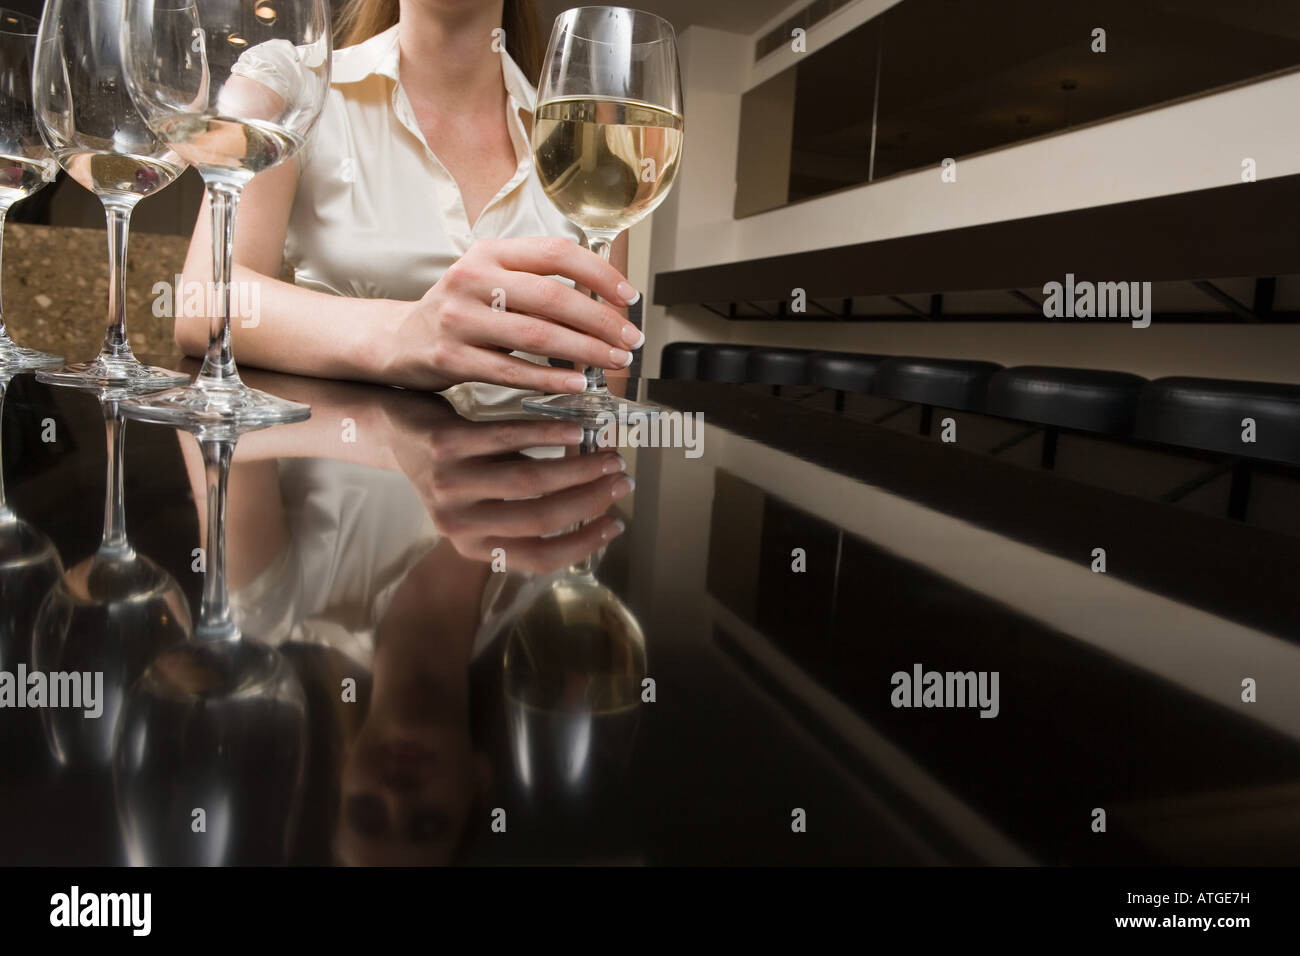 Woman drinking wine in a bar Stock Photo